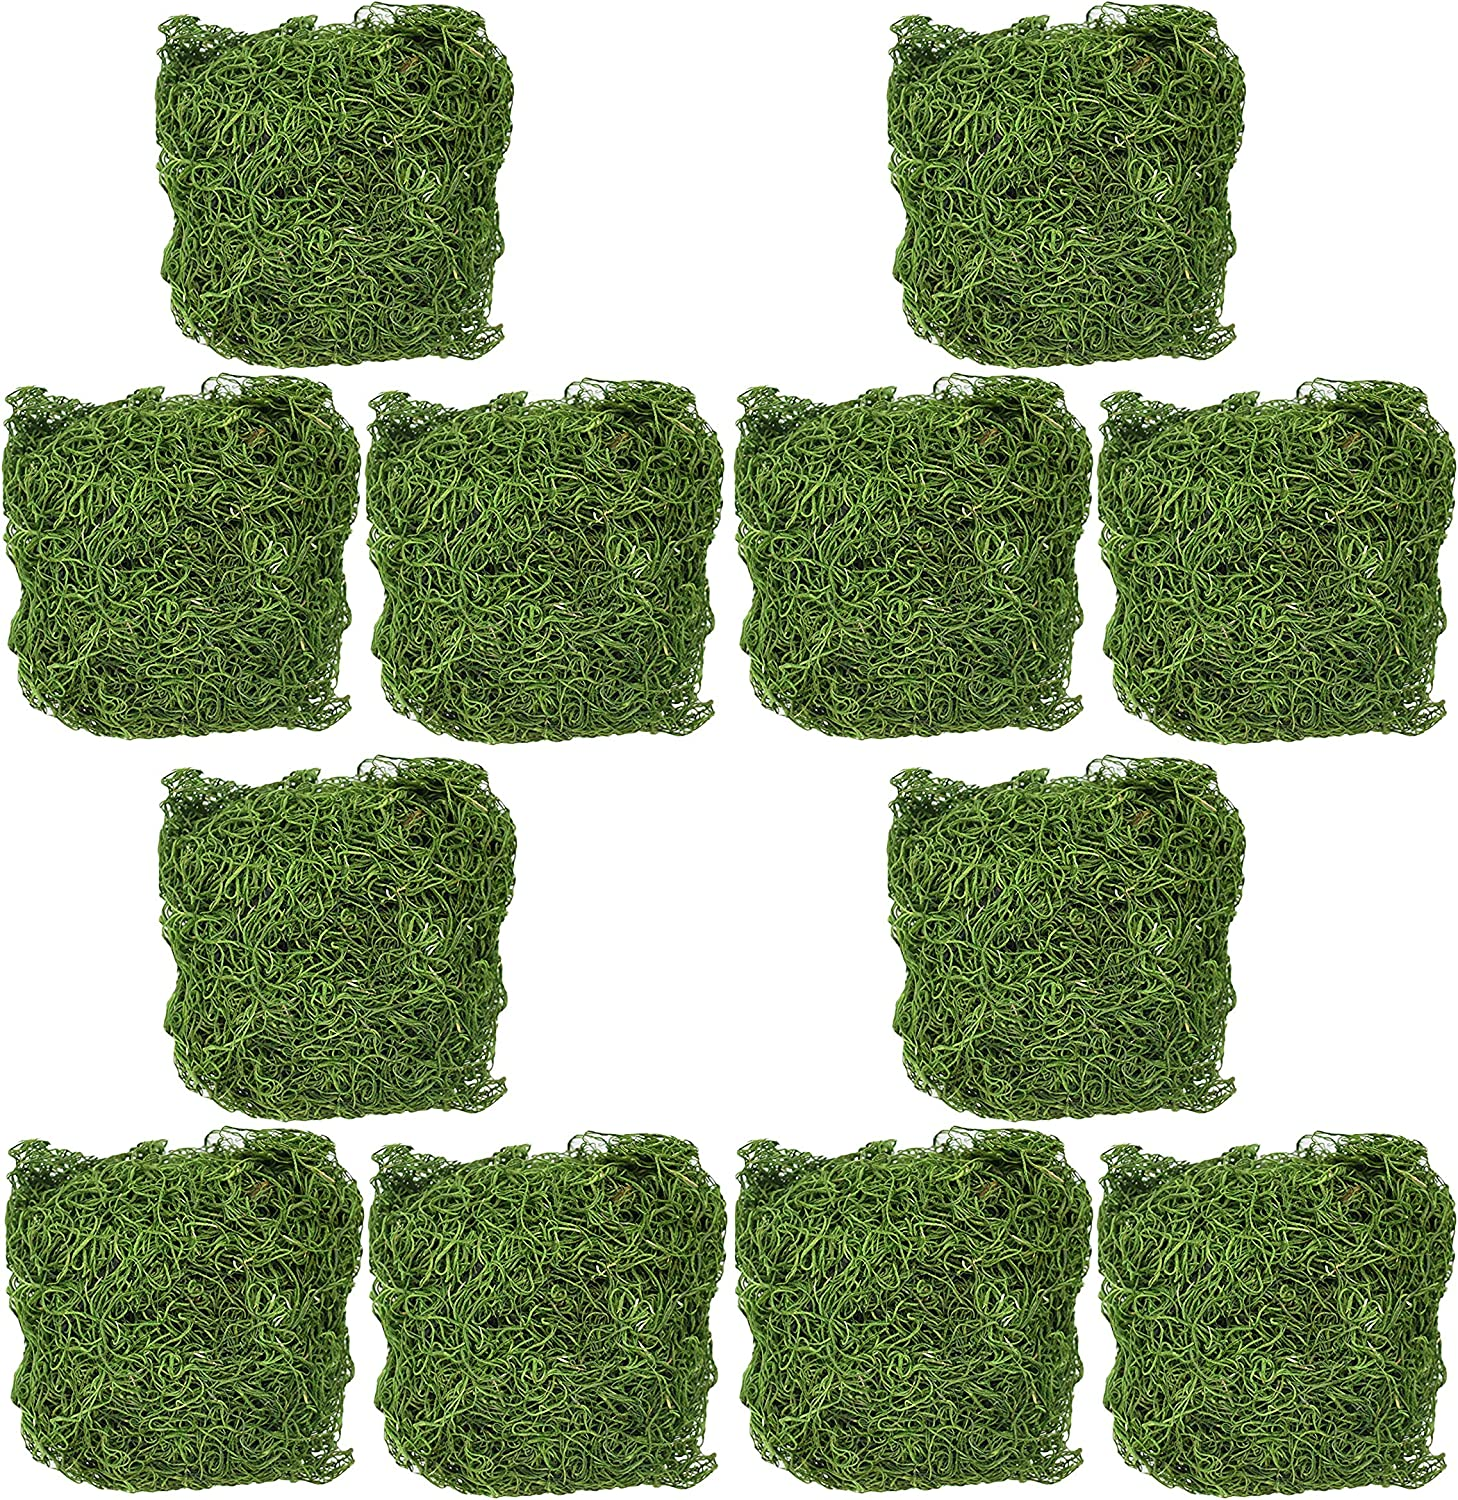 and More! Set of 1500 Cubic Inches of Dyed Green Spanish Moss Great for Decorating Flower Pots Decorative Enhancements Wreaths